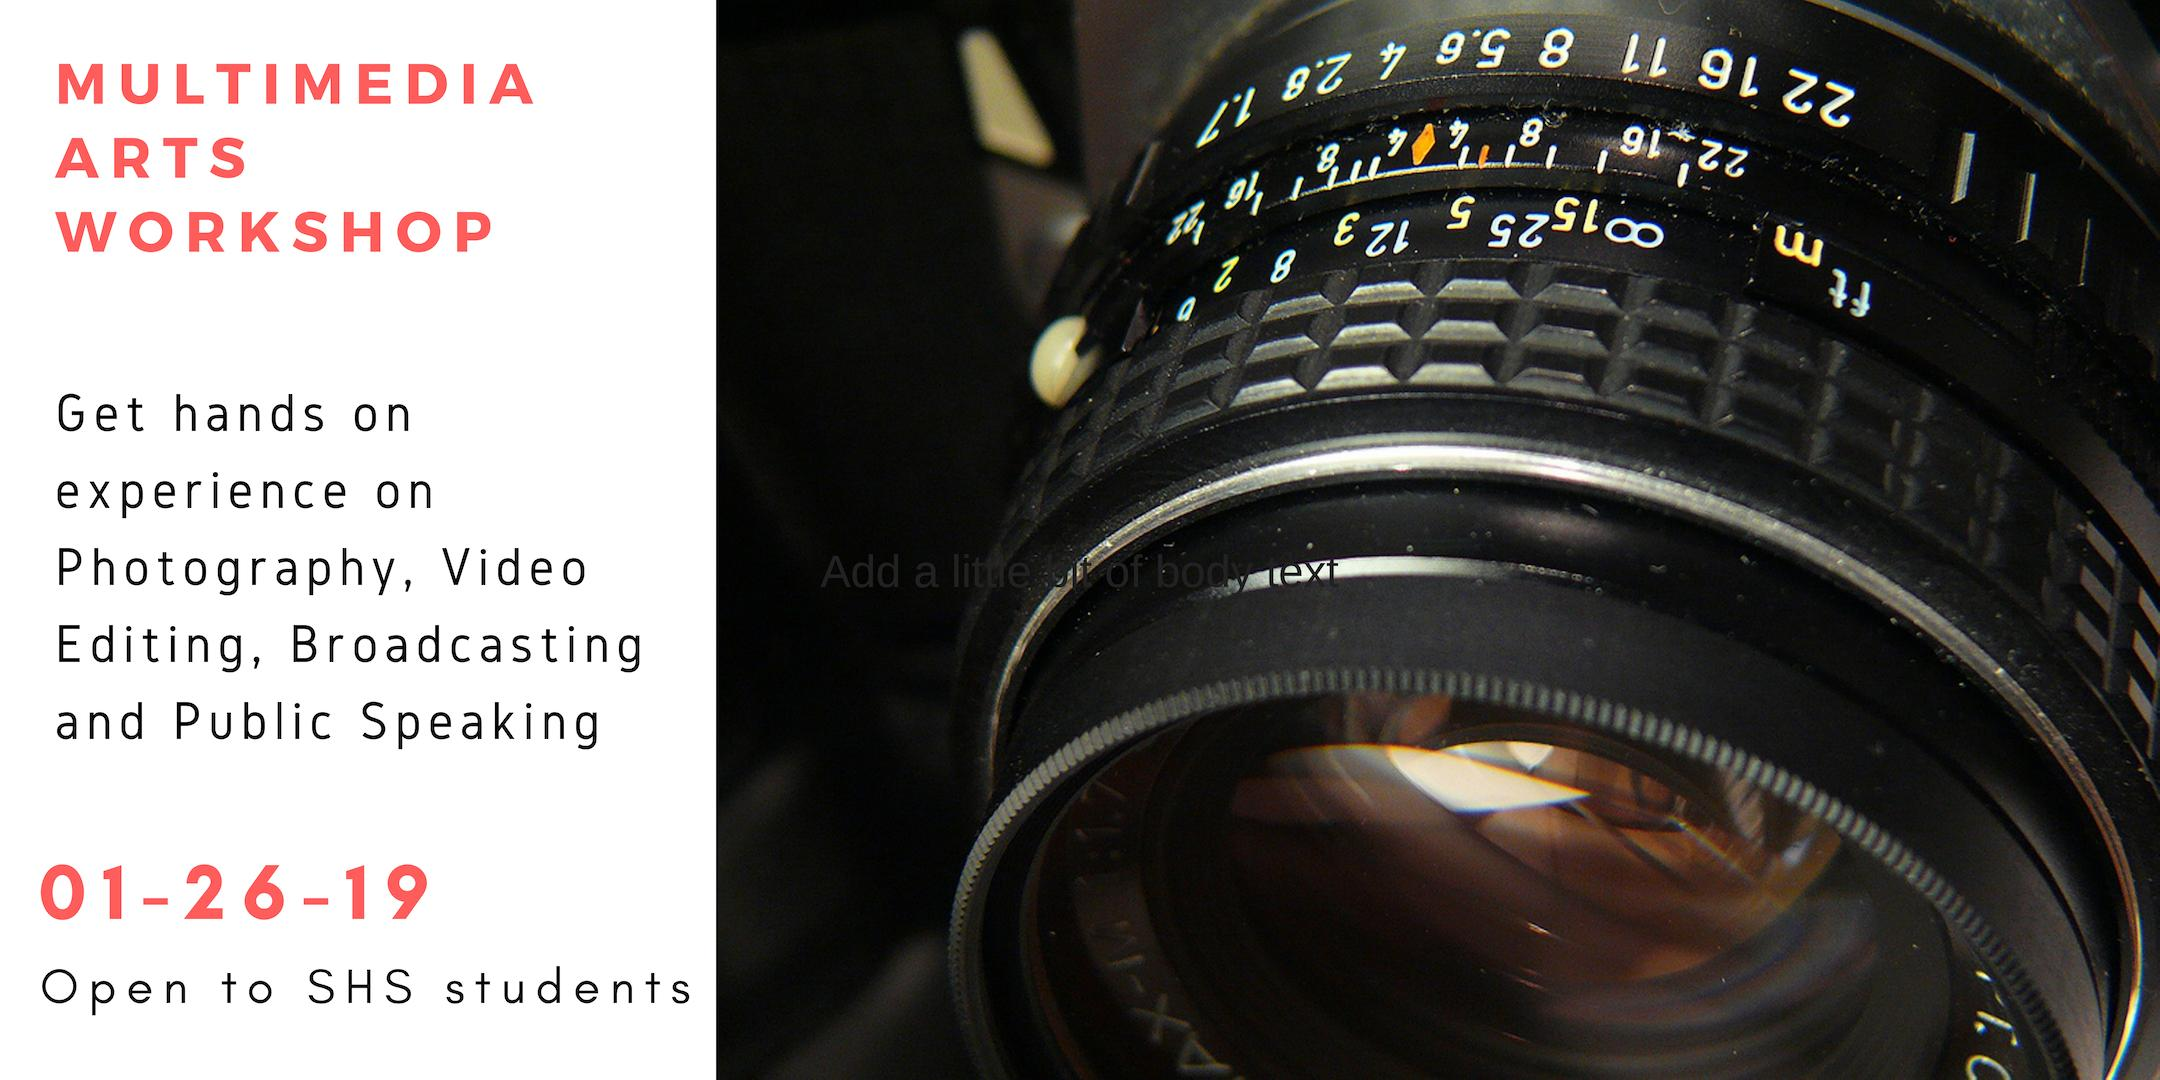 Multimedia Arts Workshop on Photography, Video Editing, and more